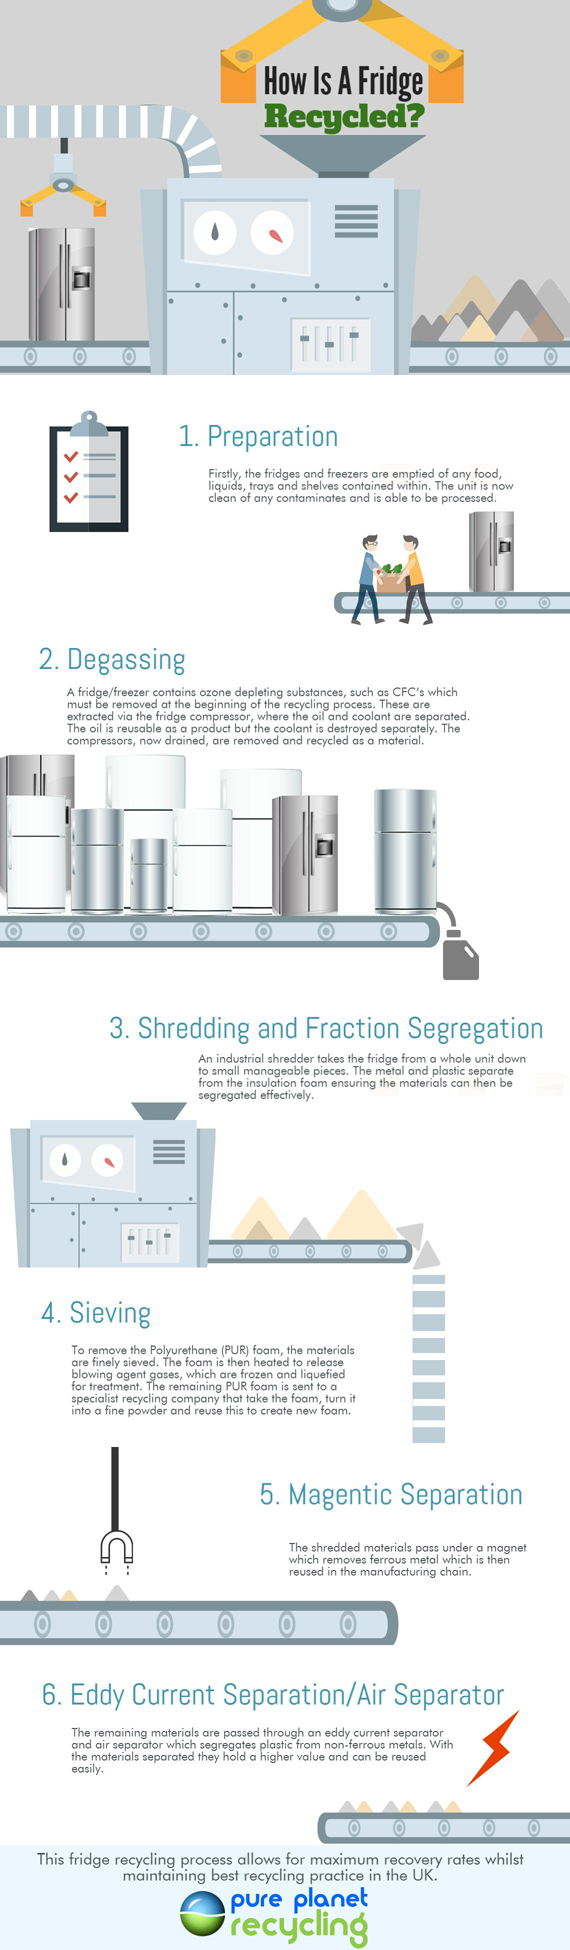 Fridge Recycling Infographic